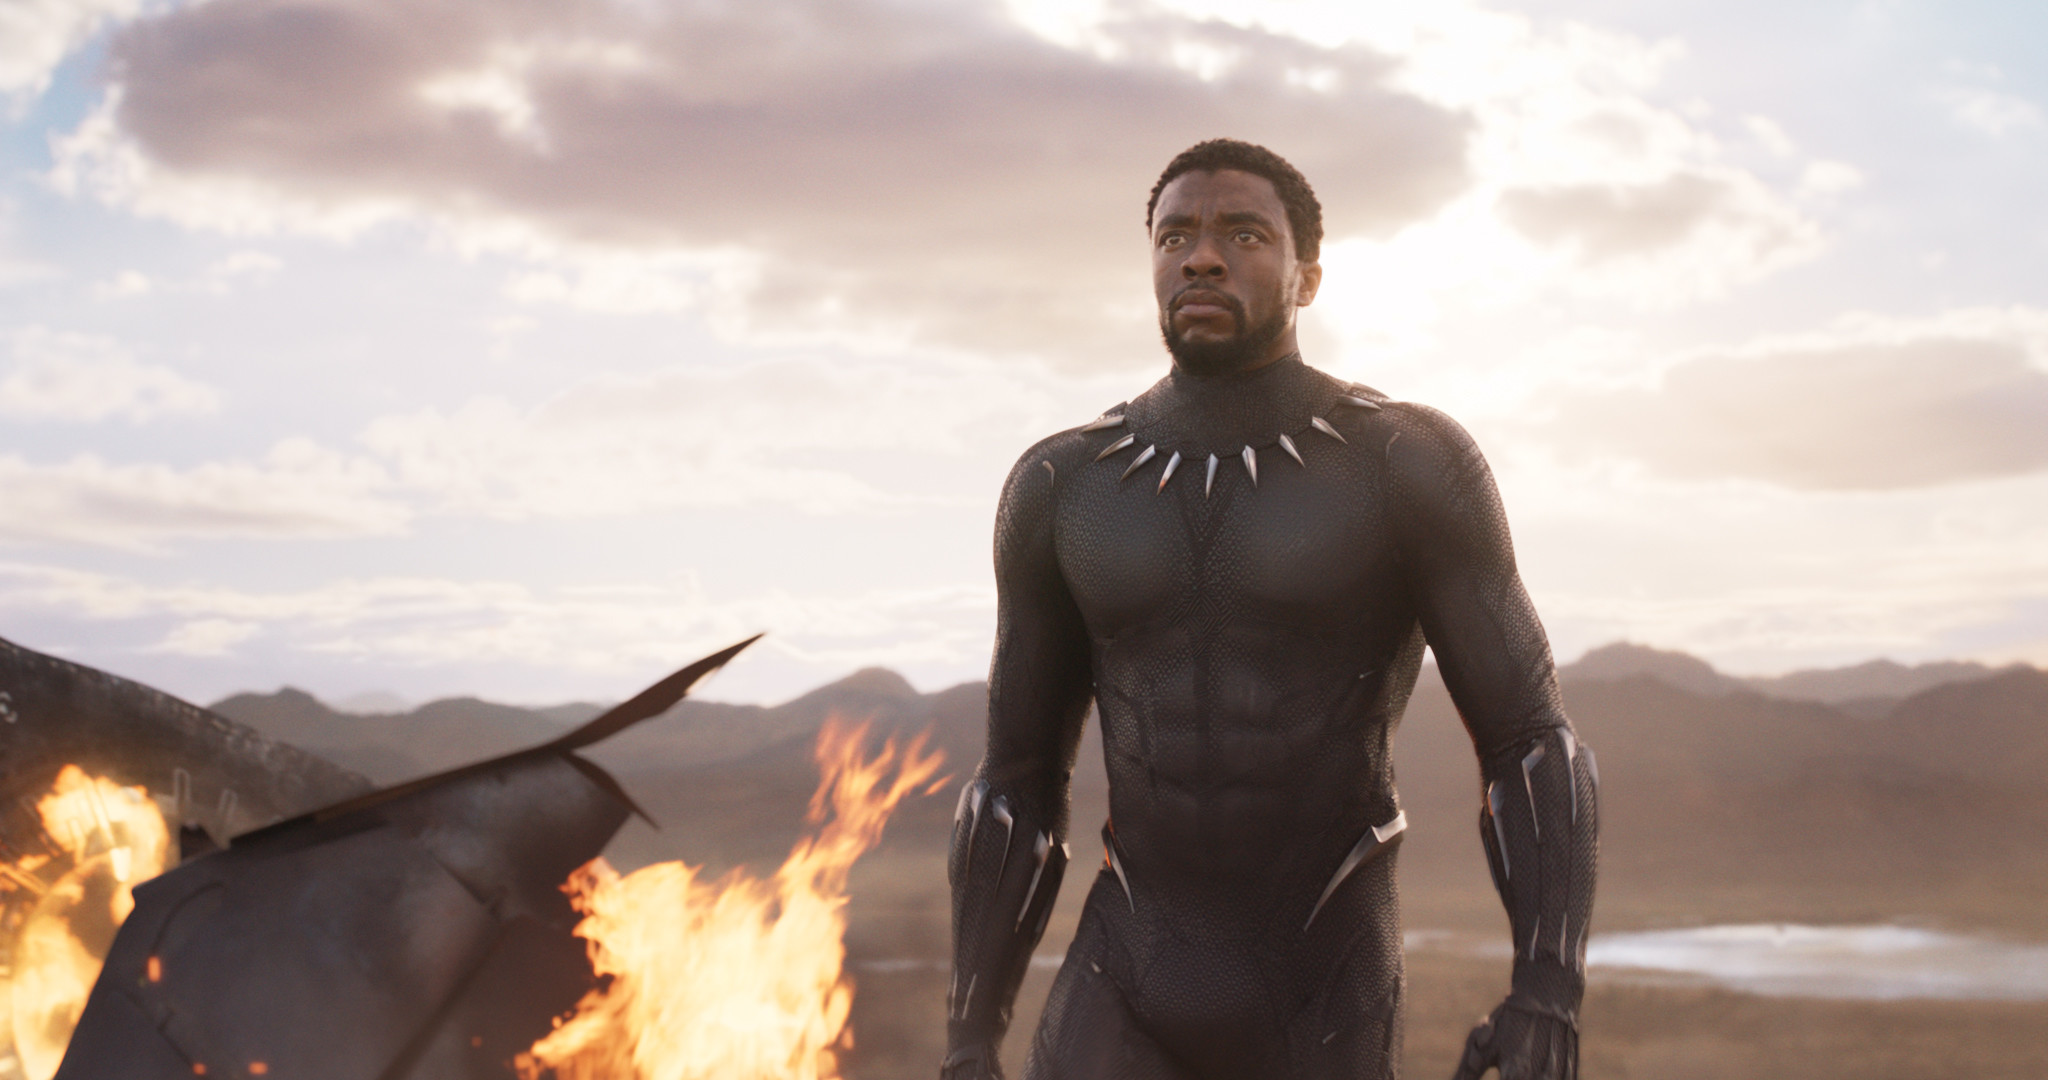 Res: 2048x1080, Marvel Studios' BLACK PANTHER opens in theaters everywhere on February 16th!